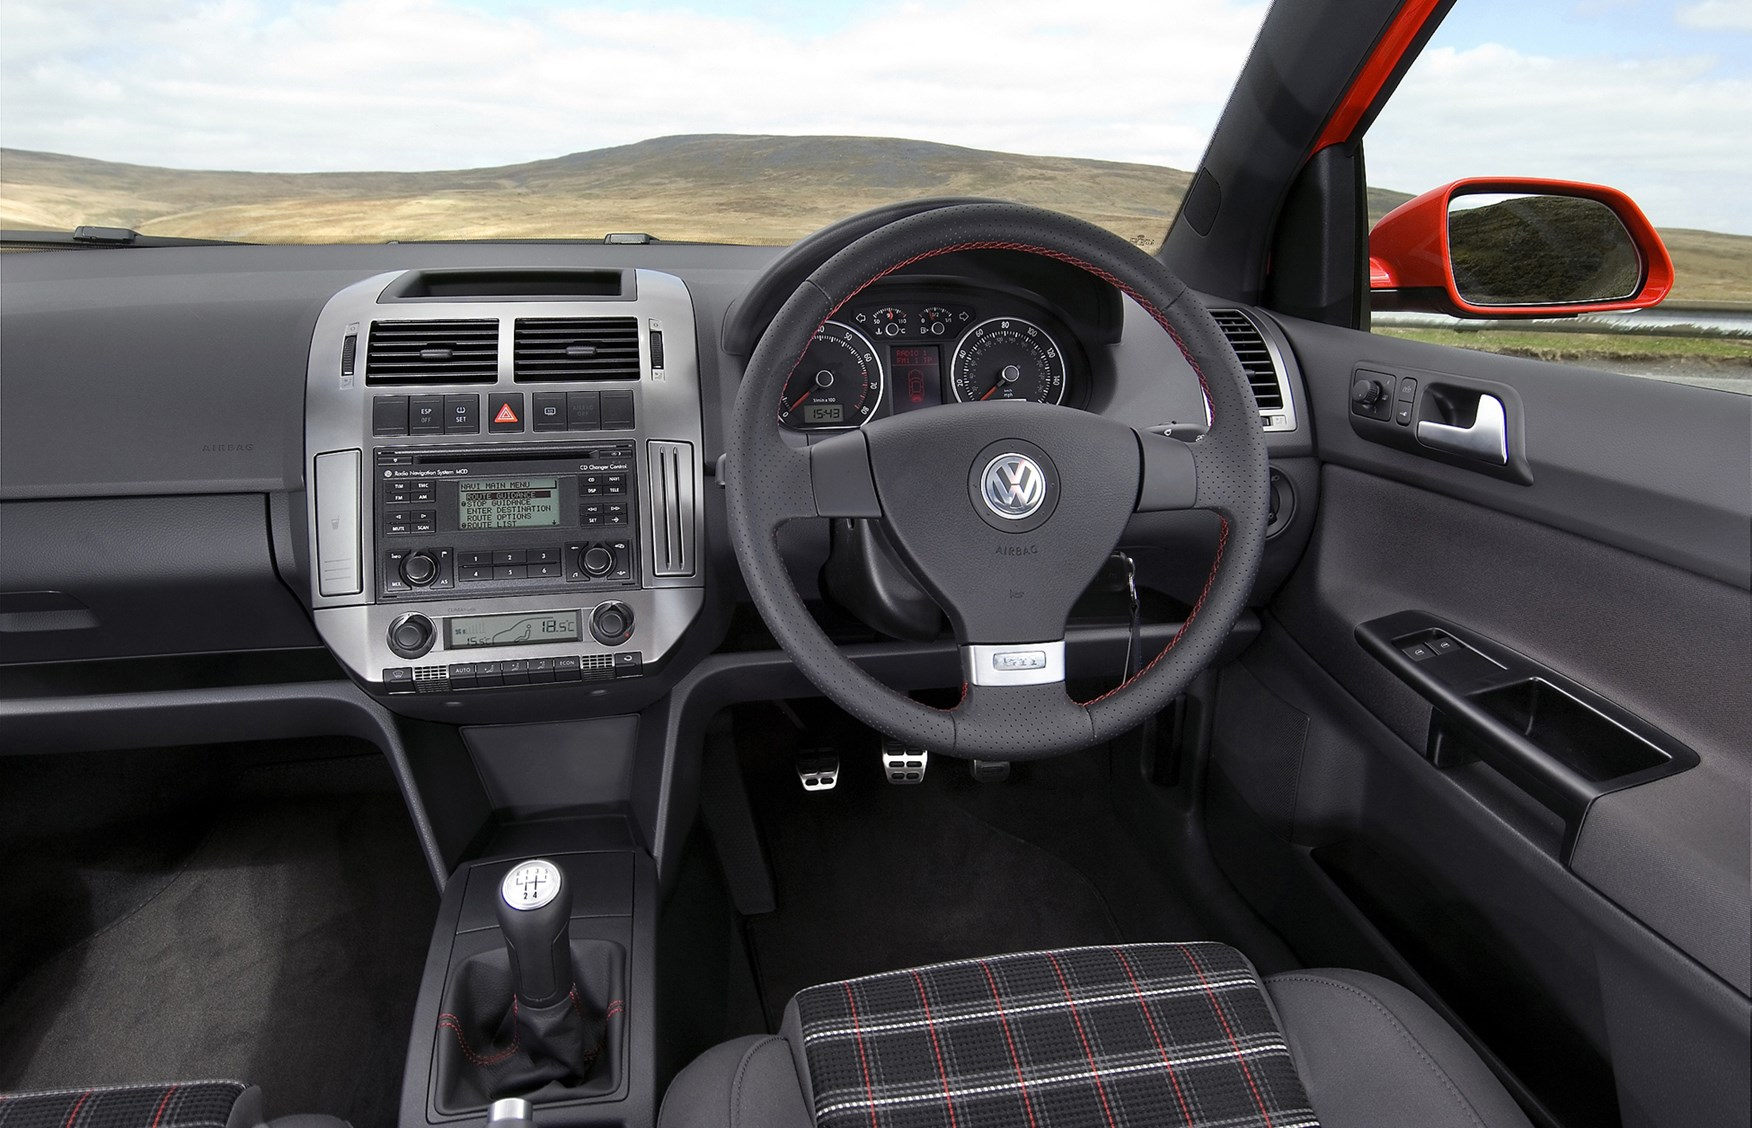 Volkswagen Polo GTI Review (2006 - 2009) | Parkers